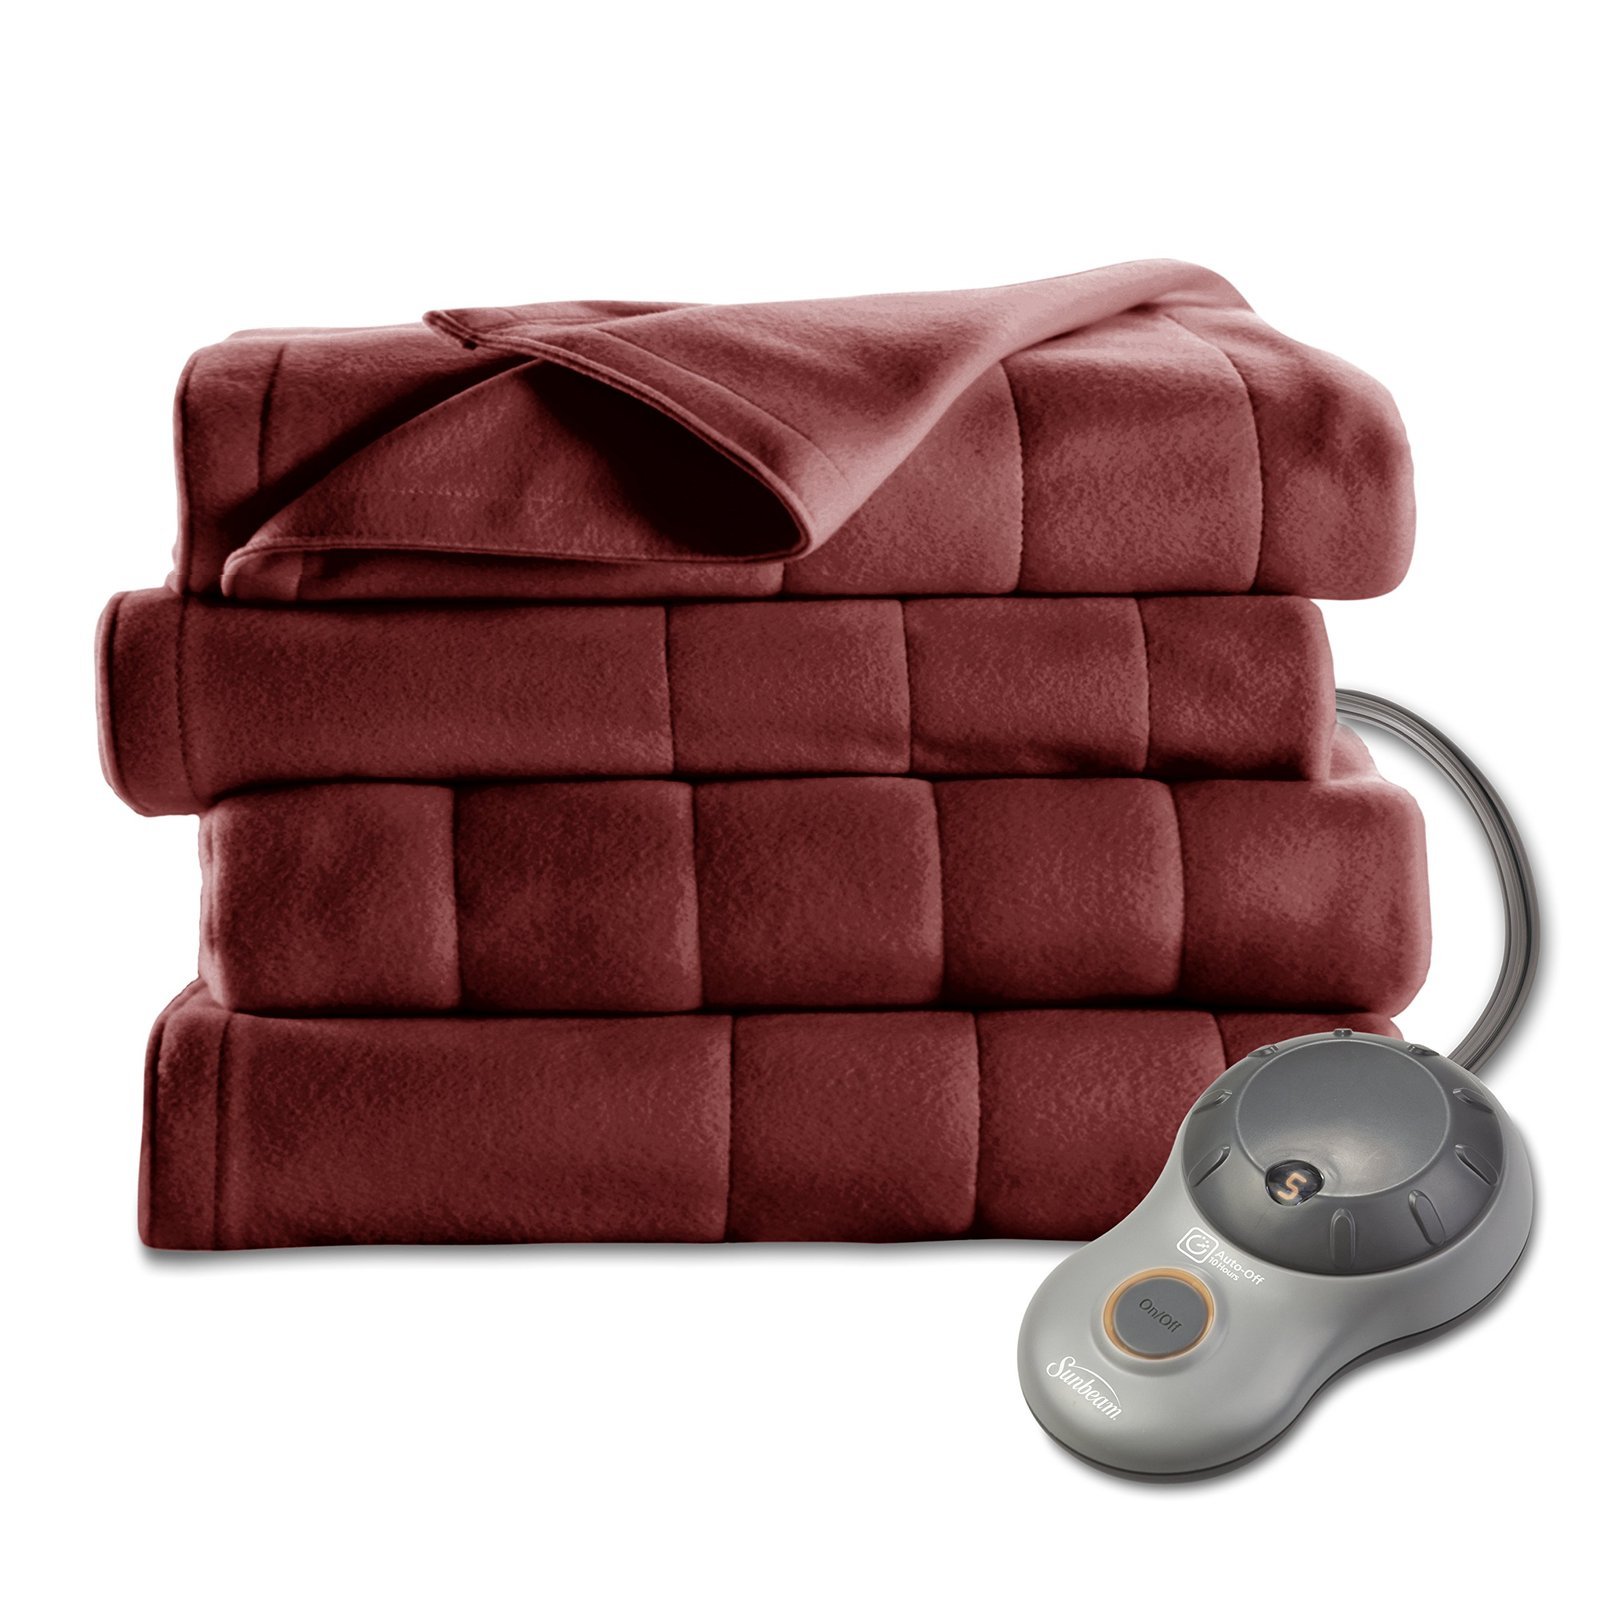 Sunbeam Quilted Fleece Heated Blanket with EasySet Pro Controller, Twin, Garnet